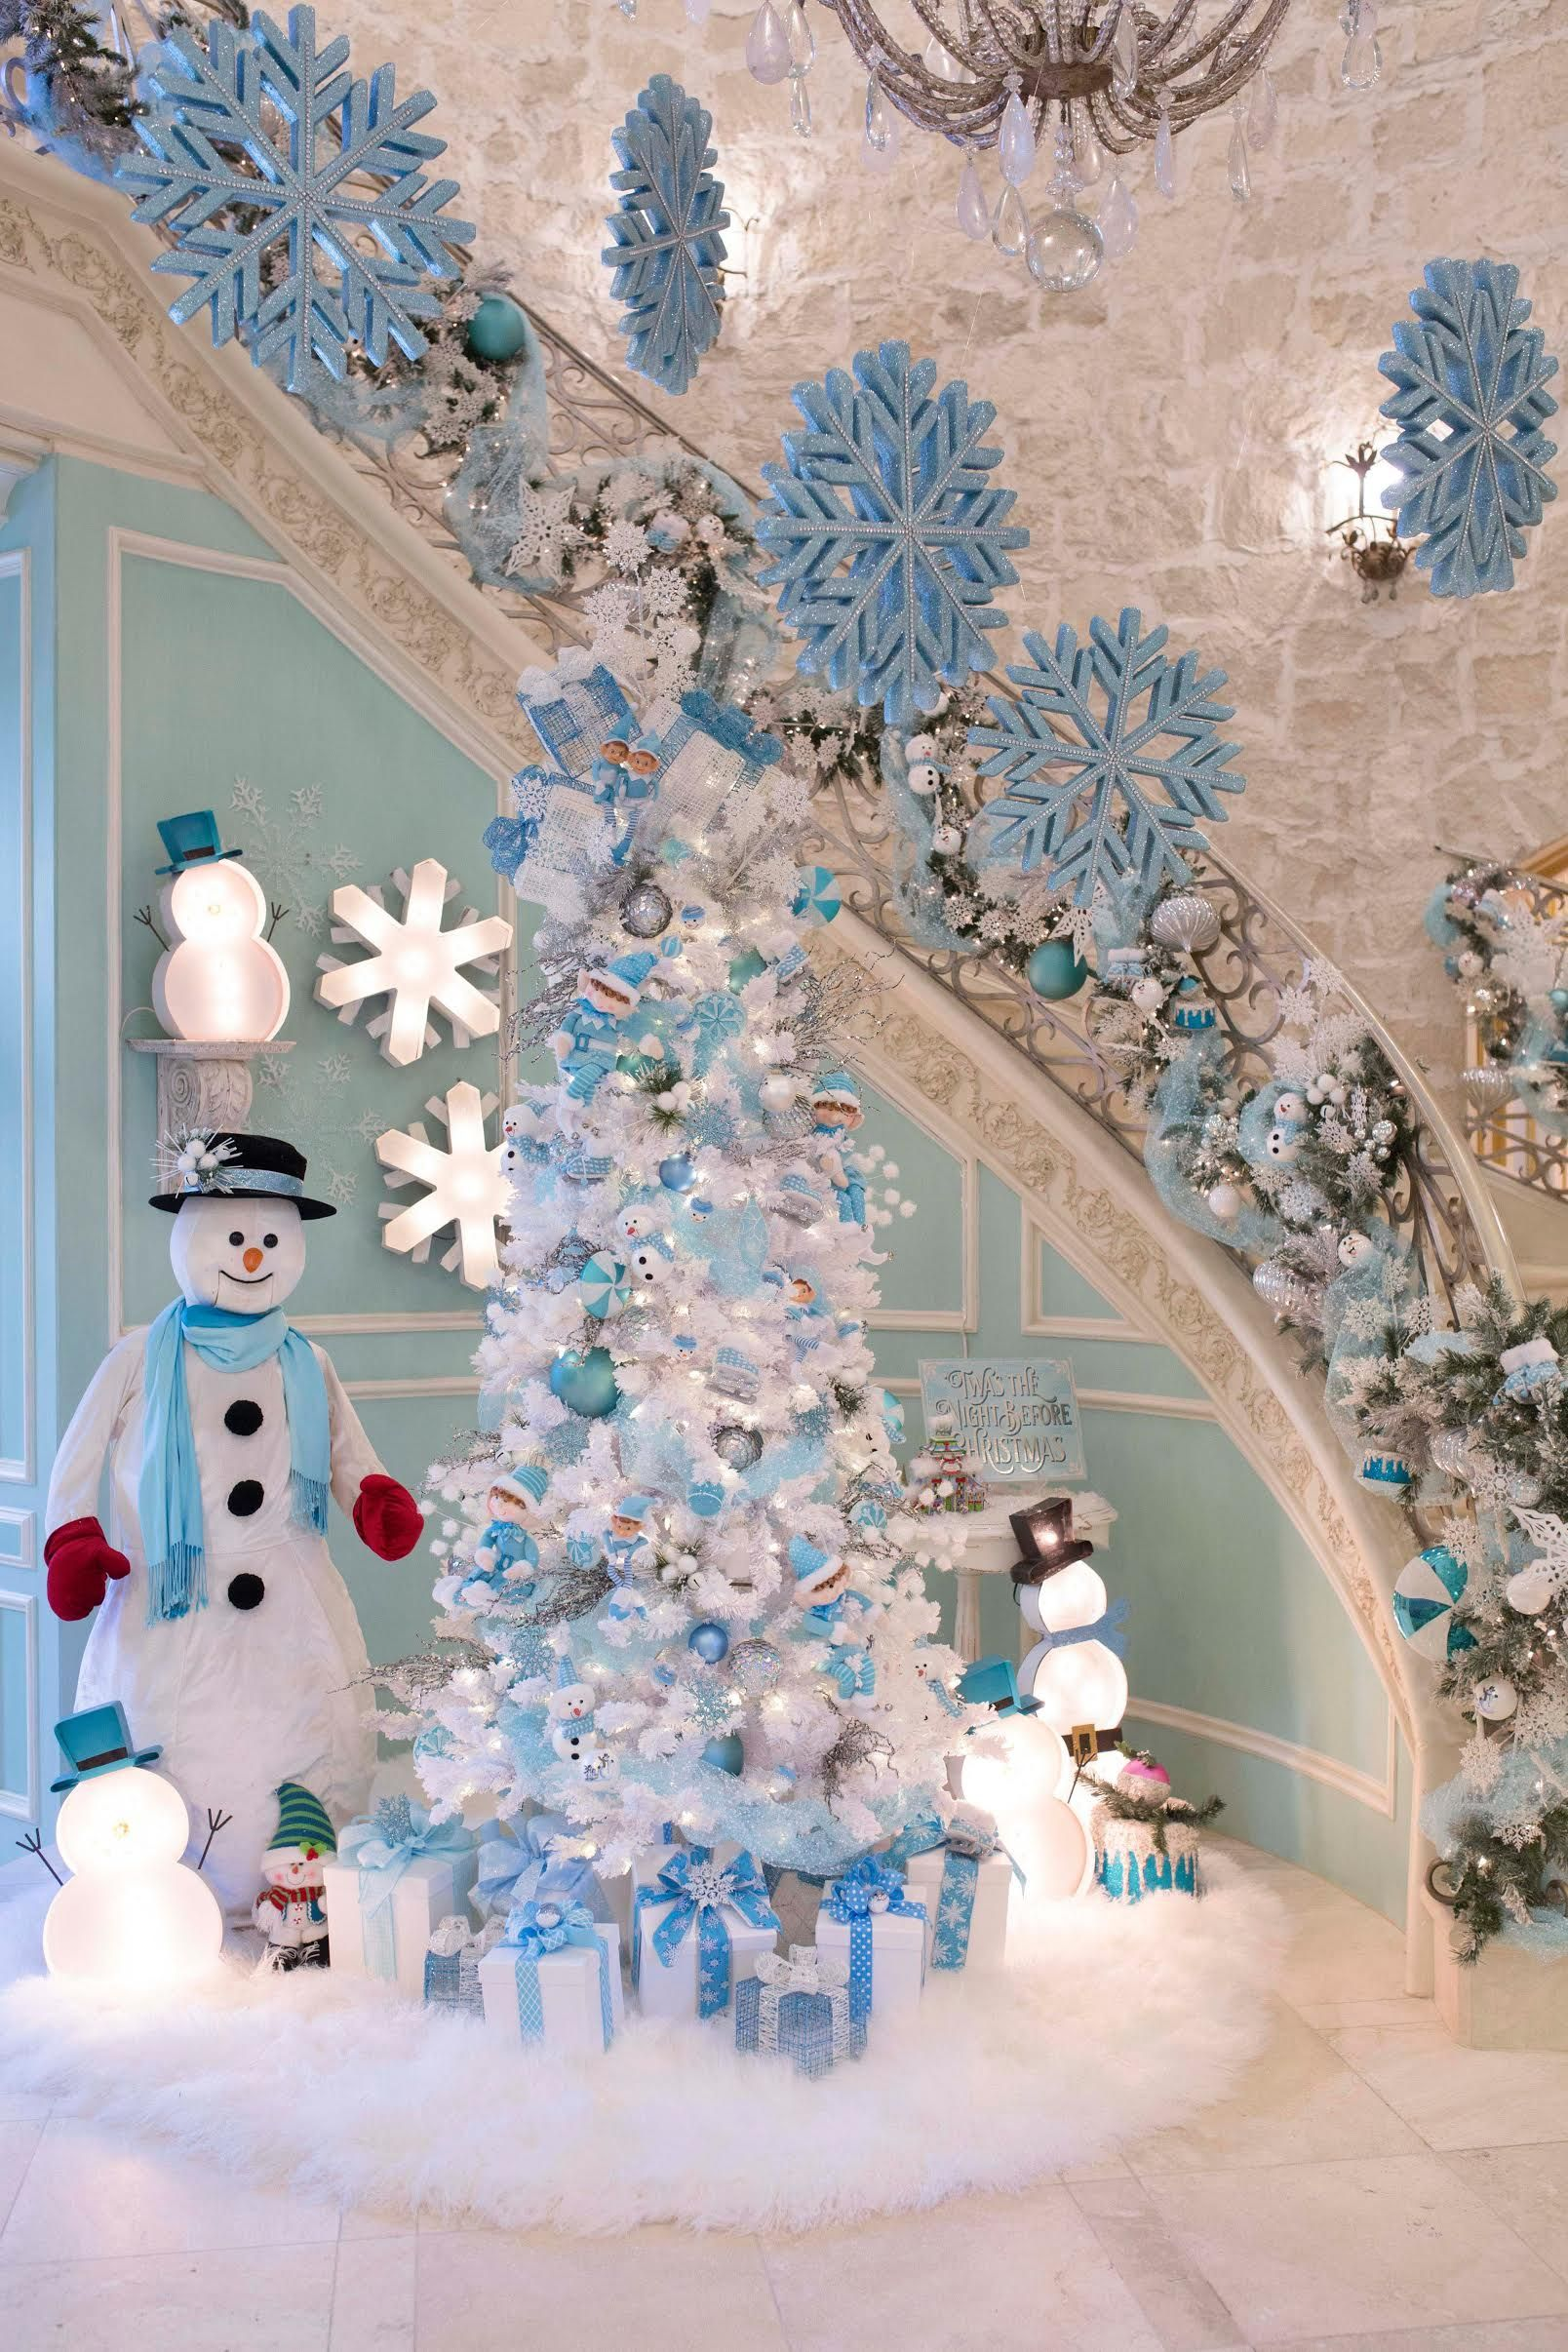 Pin by Jennifer McDonald on Home for Christmas | Pinterest | Blue ...